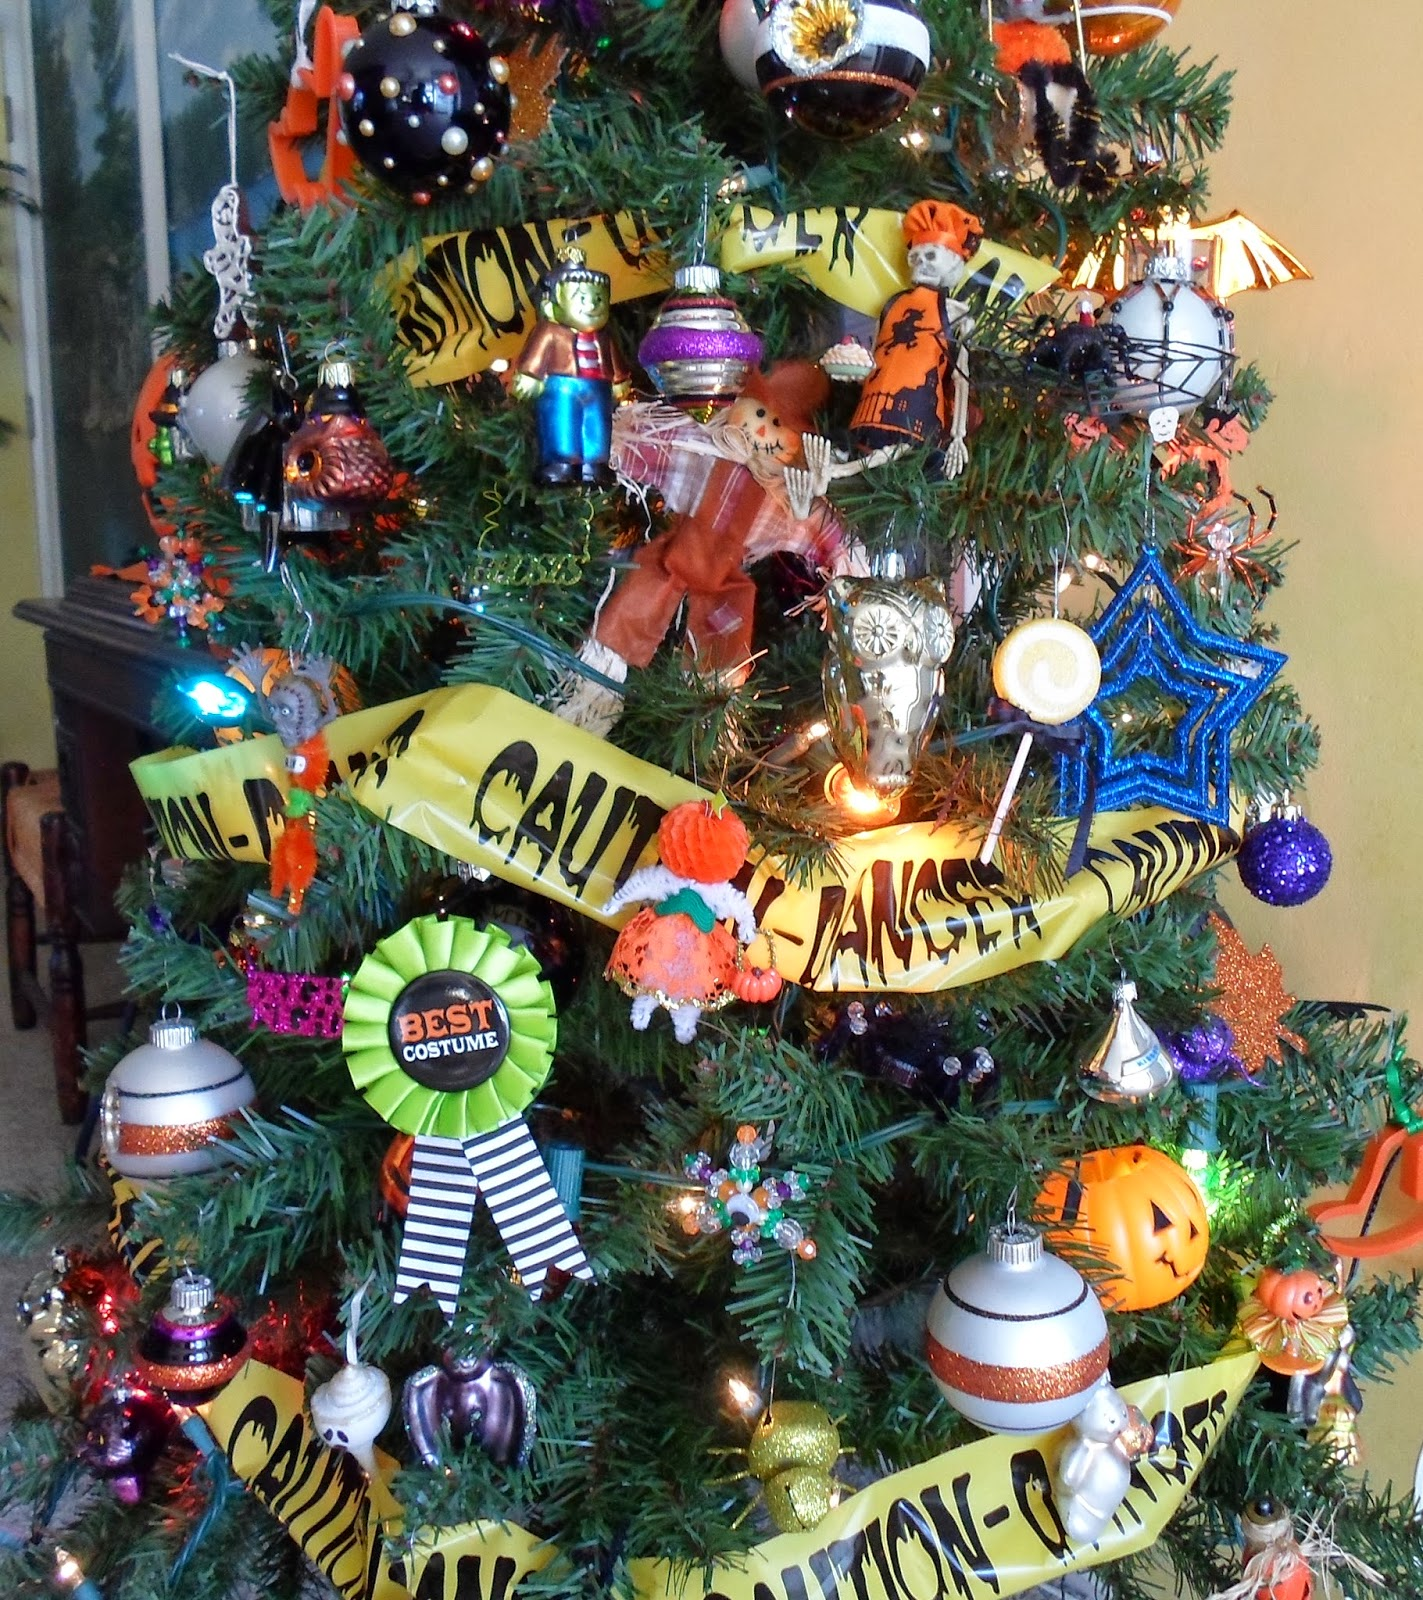 Halloween tree ornaments - The Easiest Way To Start Gathering Them Is While Christmas Ornaments Are Out Just Imagine What Would Work For Halloween The Solid Black Balls